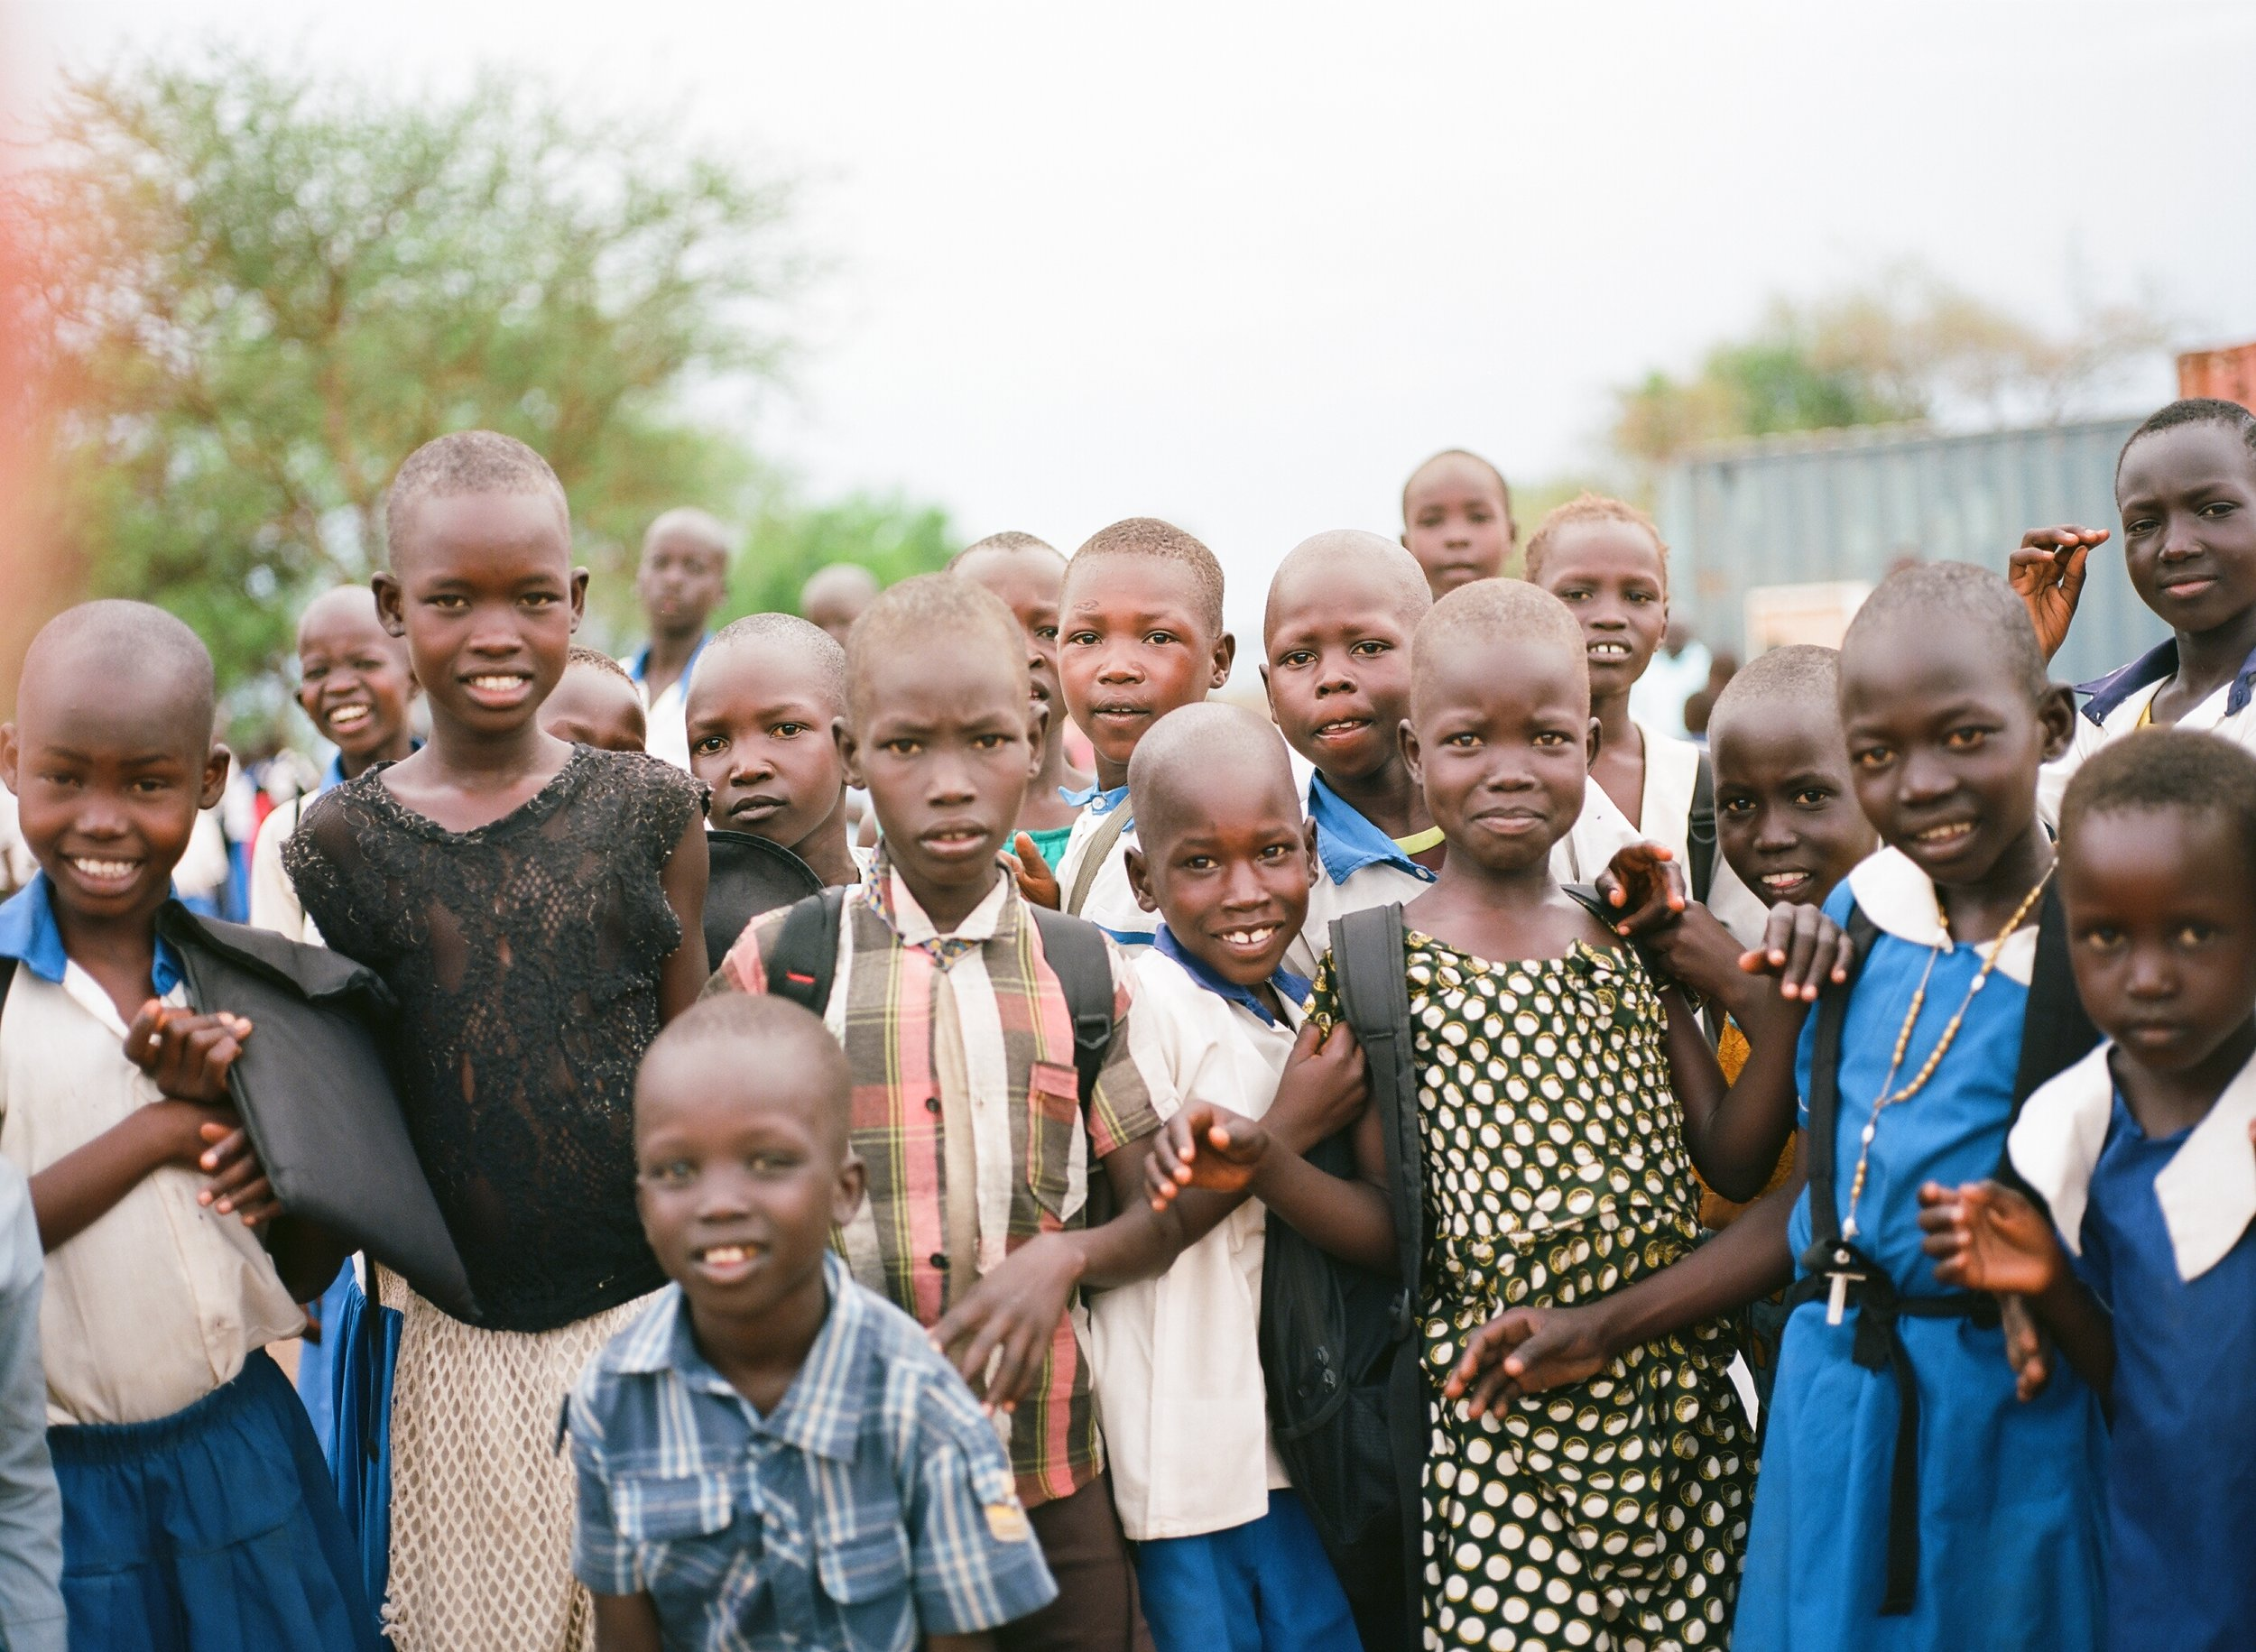 $250 - DeWorming Program for a Month